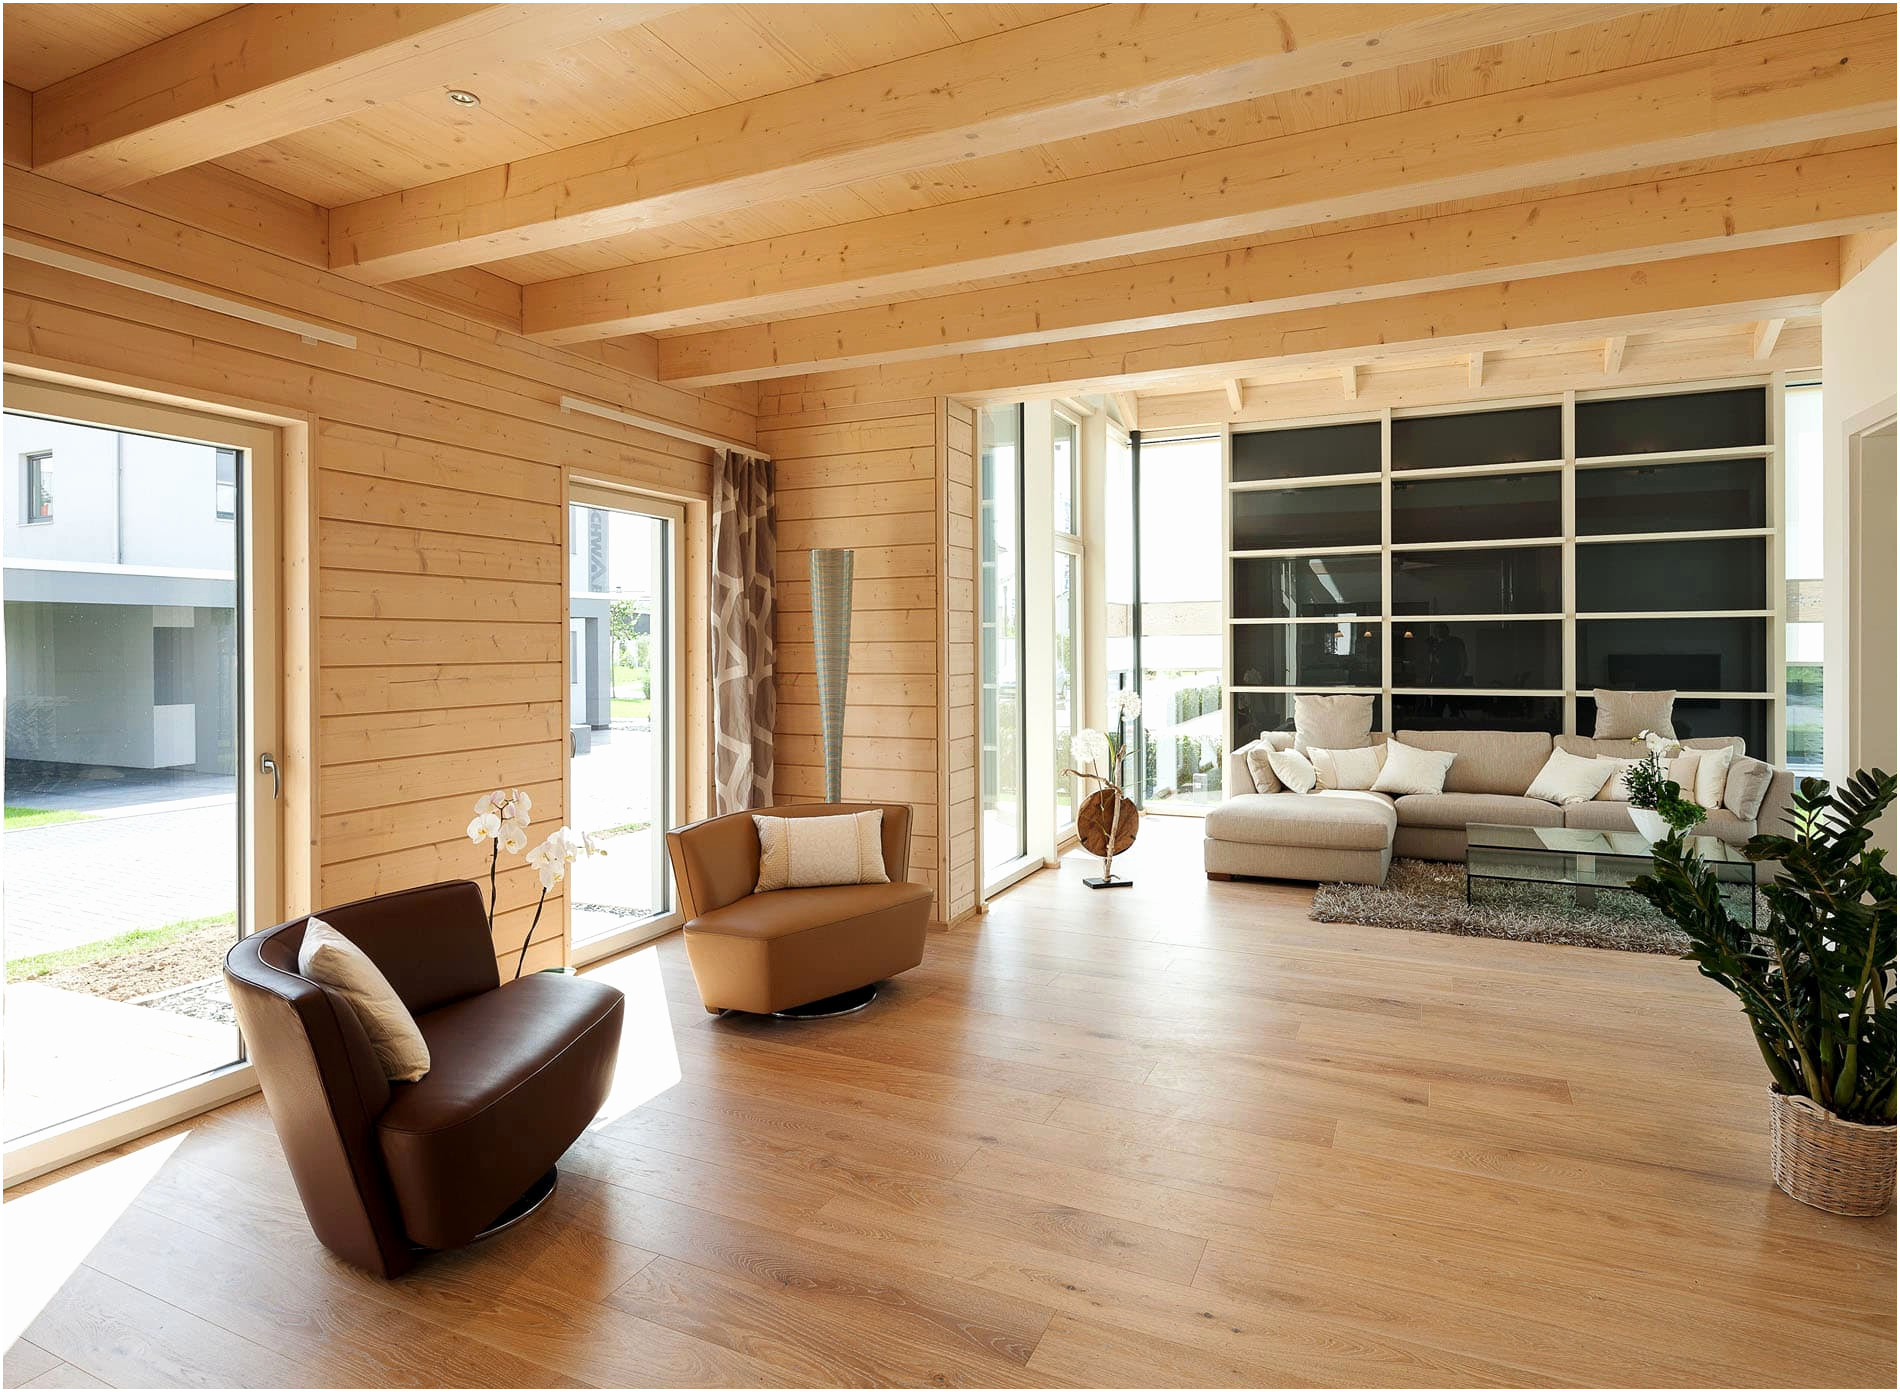 hardwood floors with wood ceilings of waterproofing wood furniture ivegotwoodfurniture com pertaining to waterproofing wood furniture wooden roof interior lovely od barcelona deluxe room od barcelona